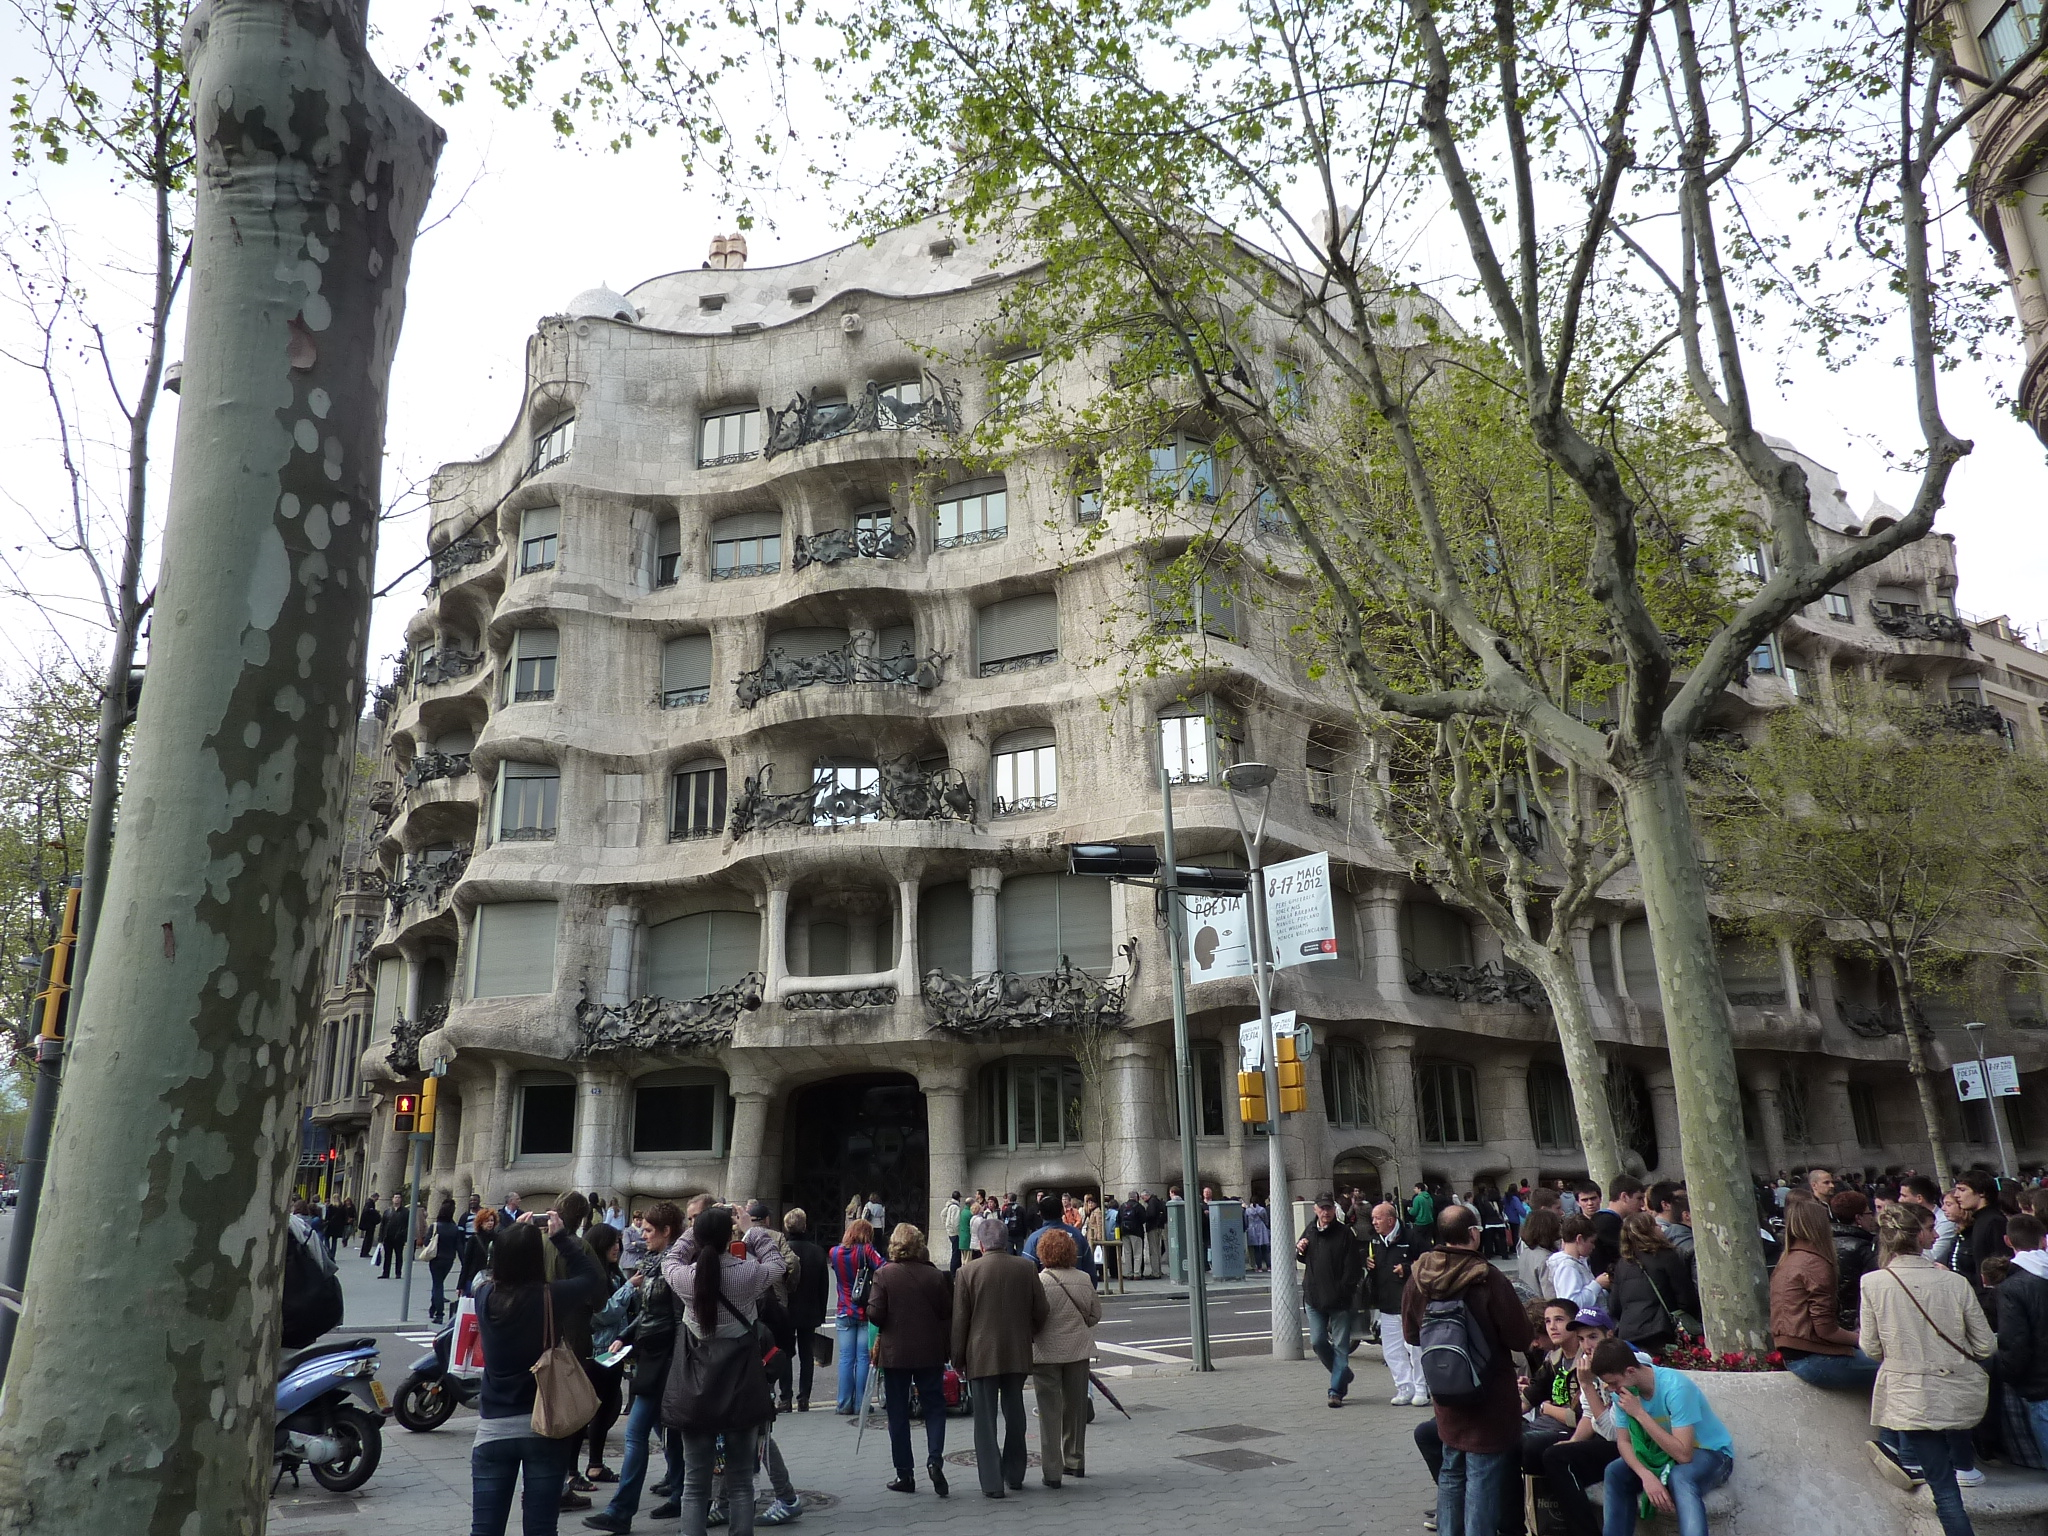 travel memories with Gaudí's Casa Milà 2012 - Gamesforlanguage.com